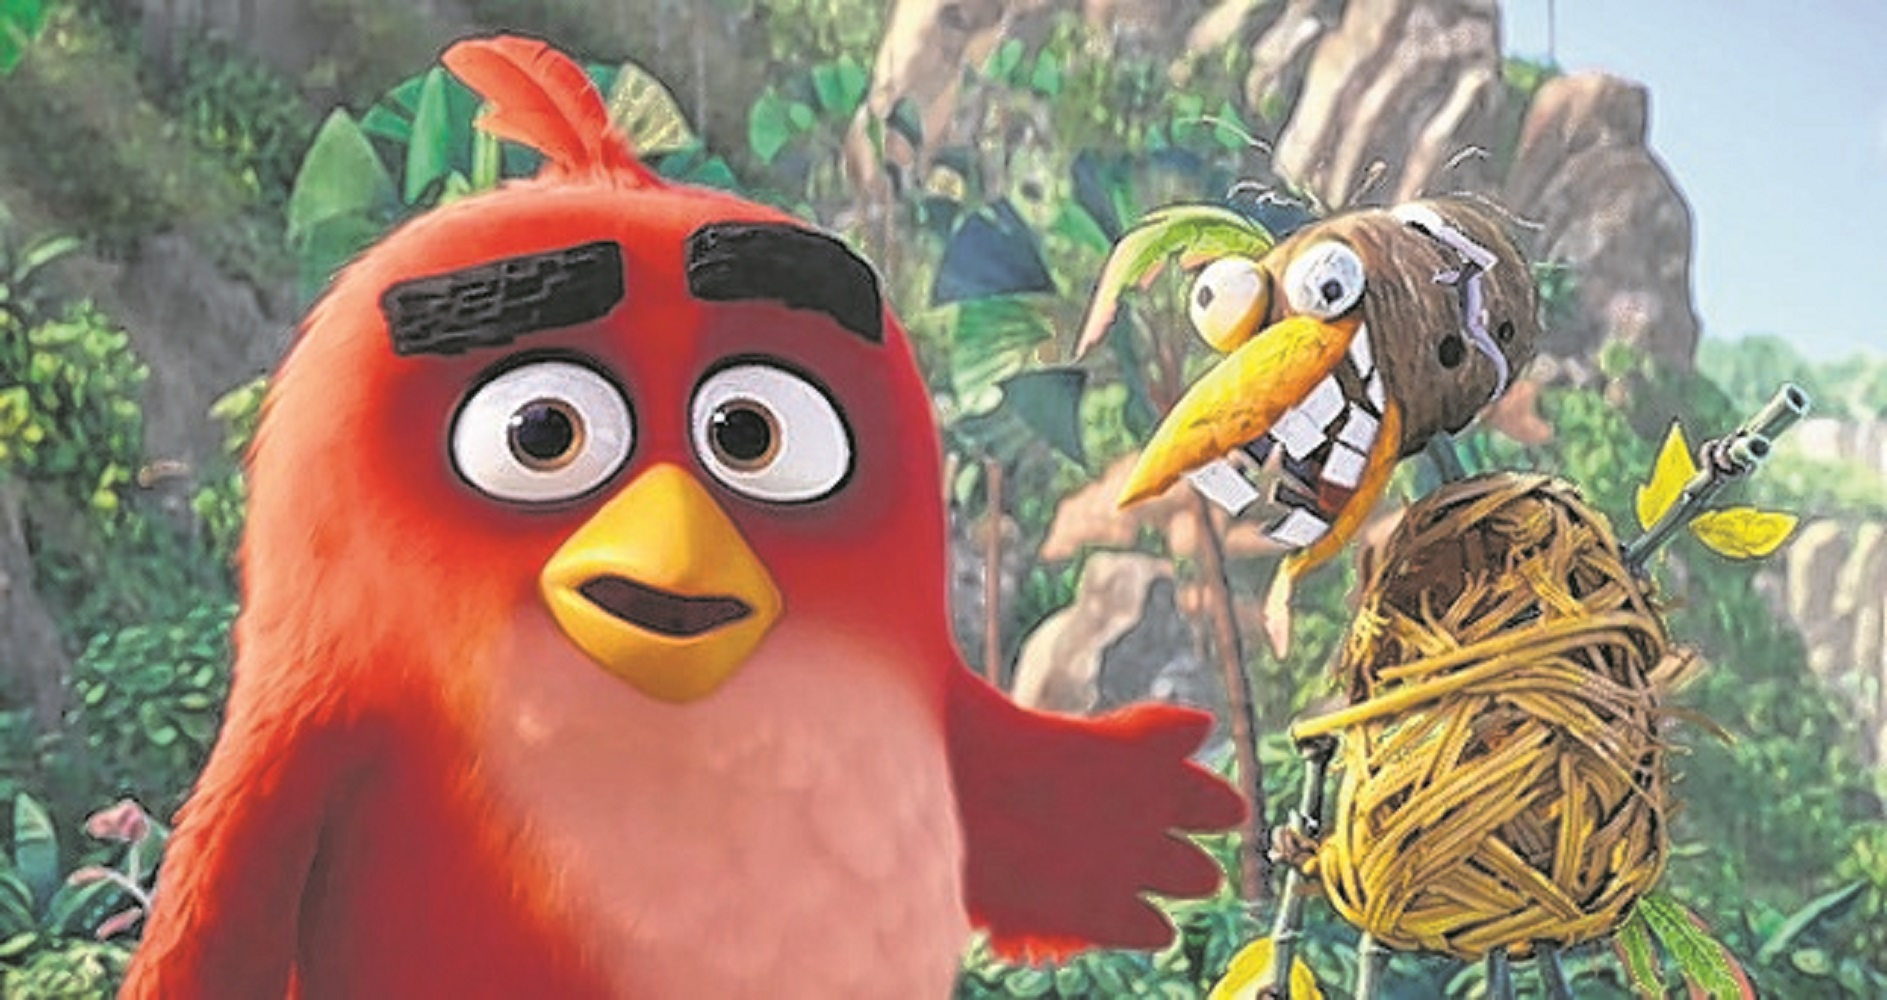 Angry Birds: Tweeting a poor message to young audiences?